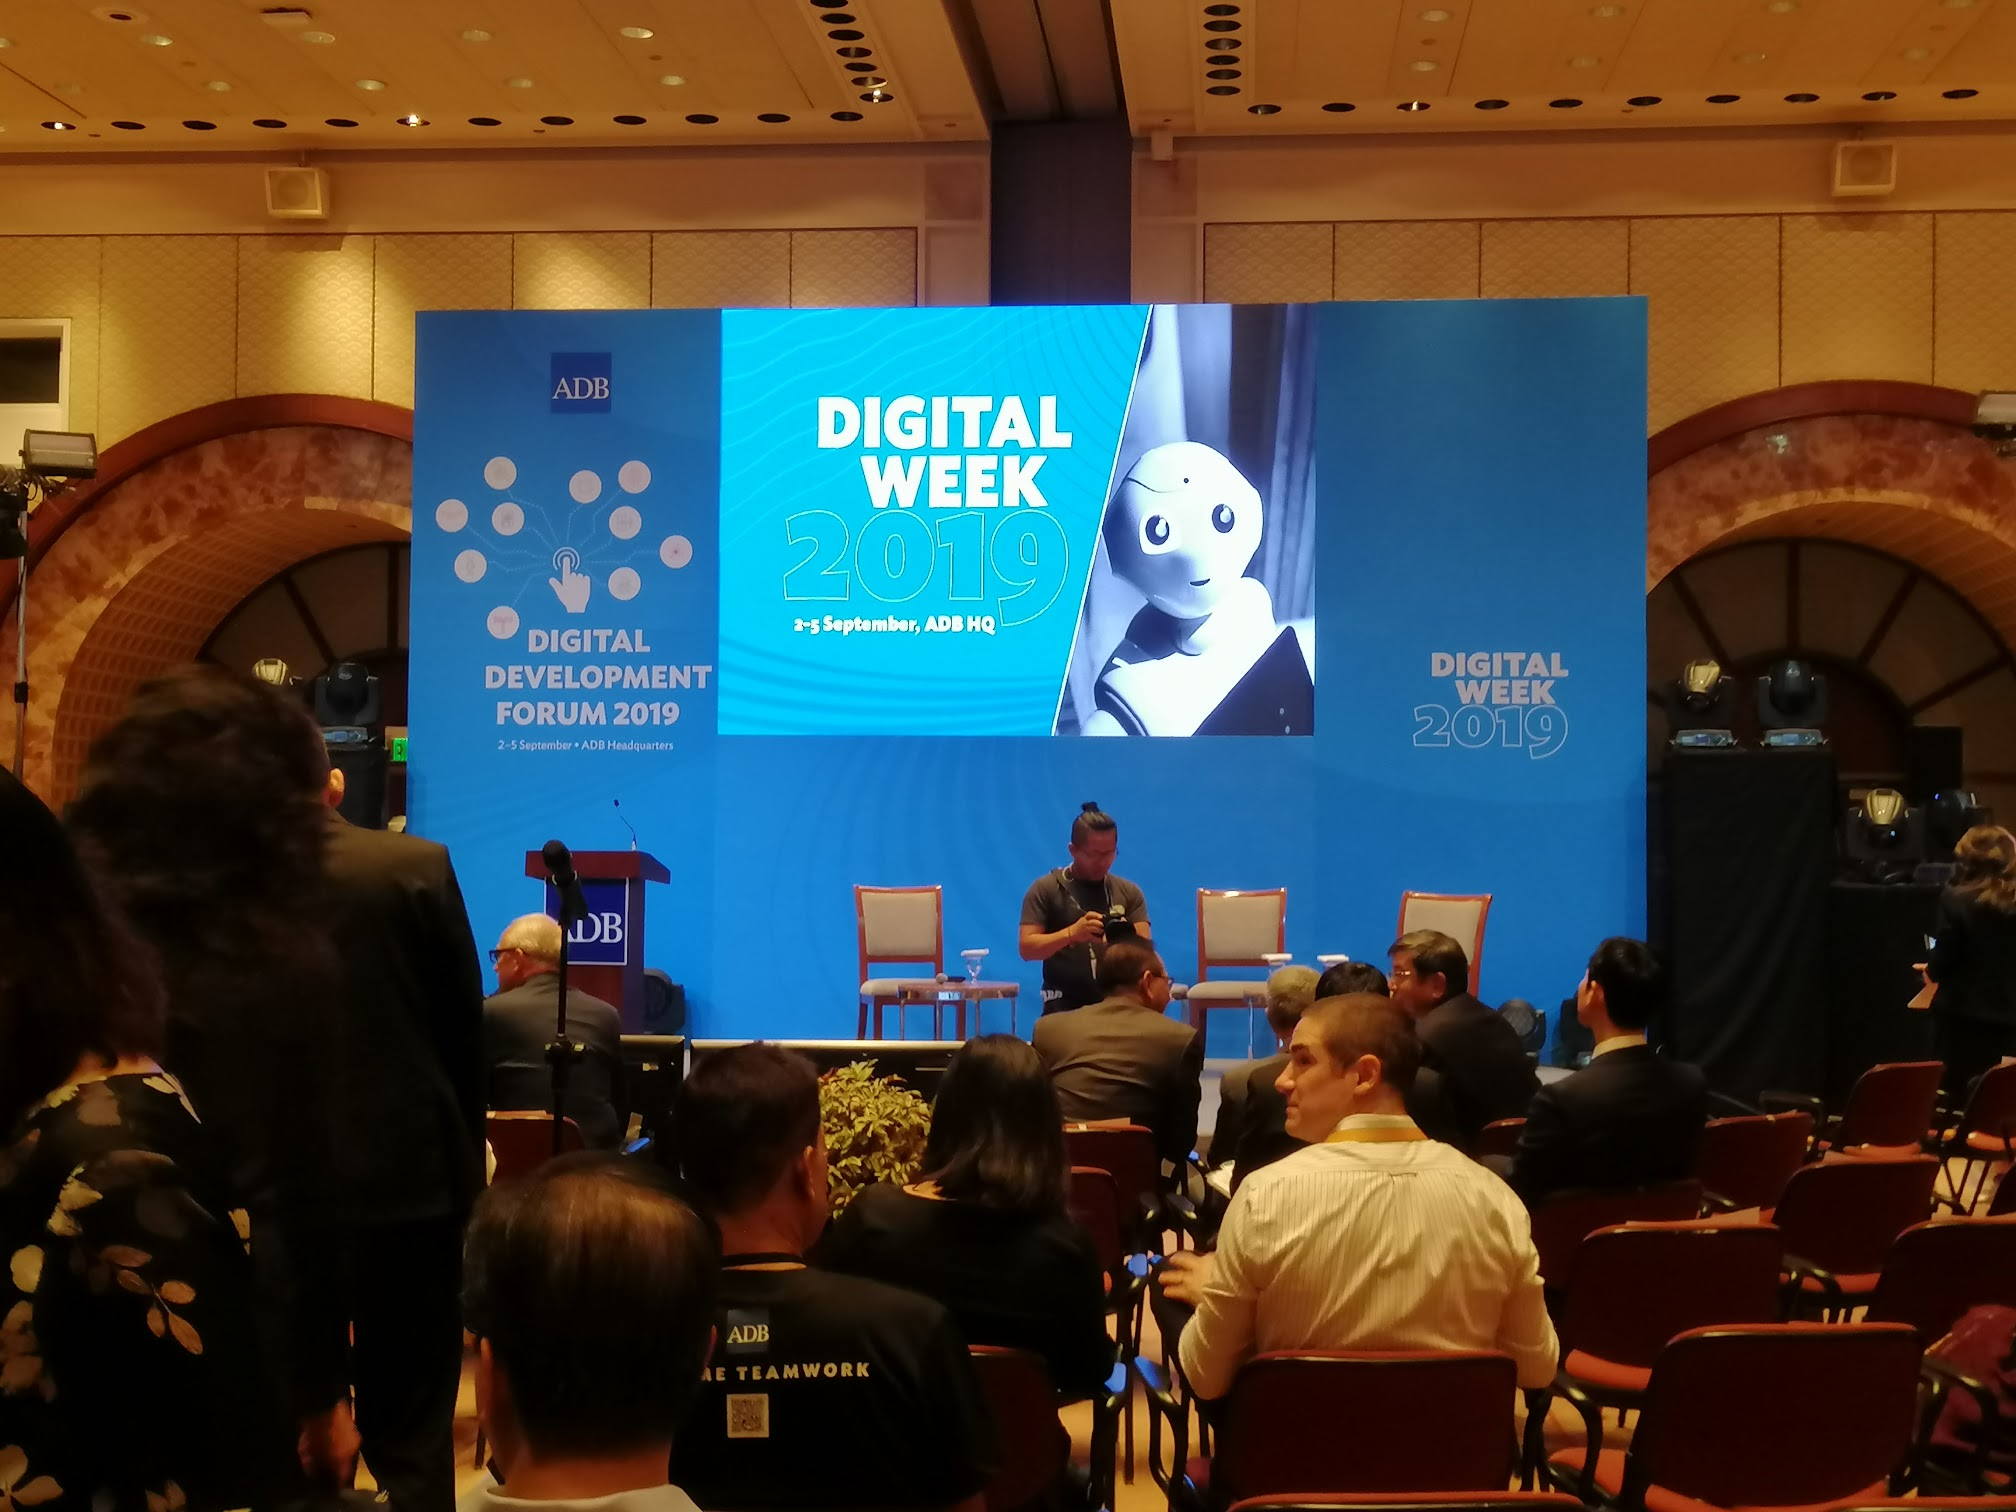 9:09 a.m. - The stage is set for the official start of Digital Week